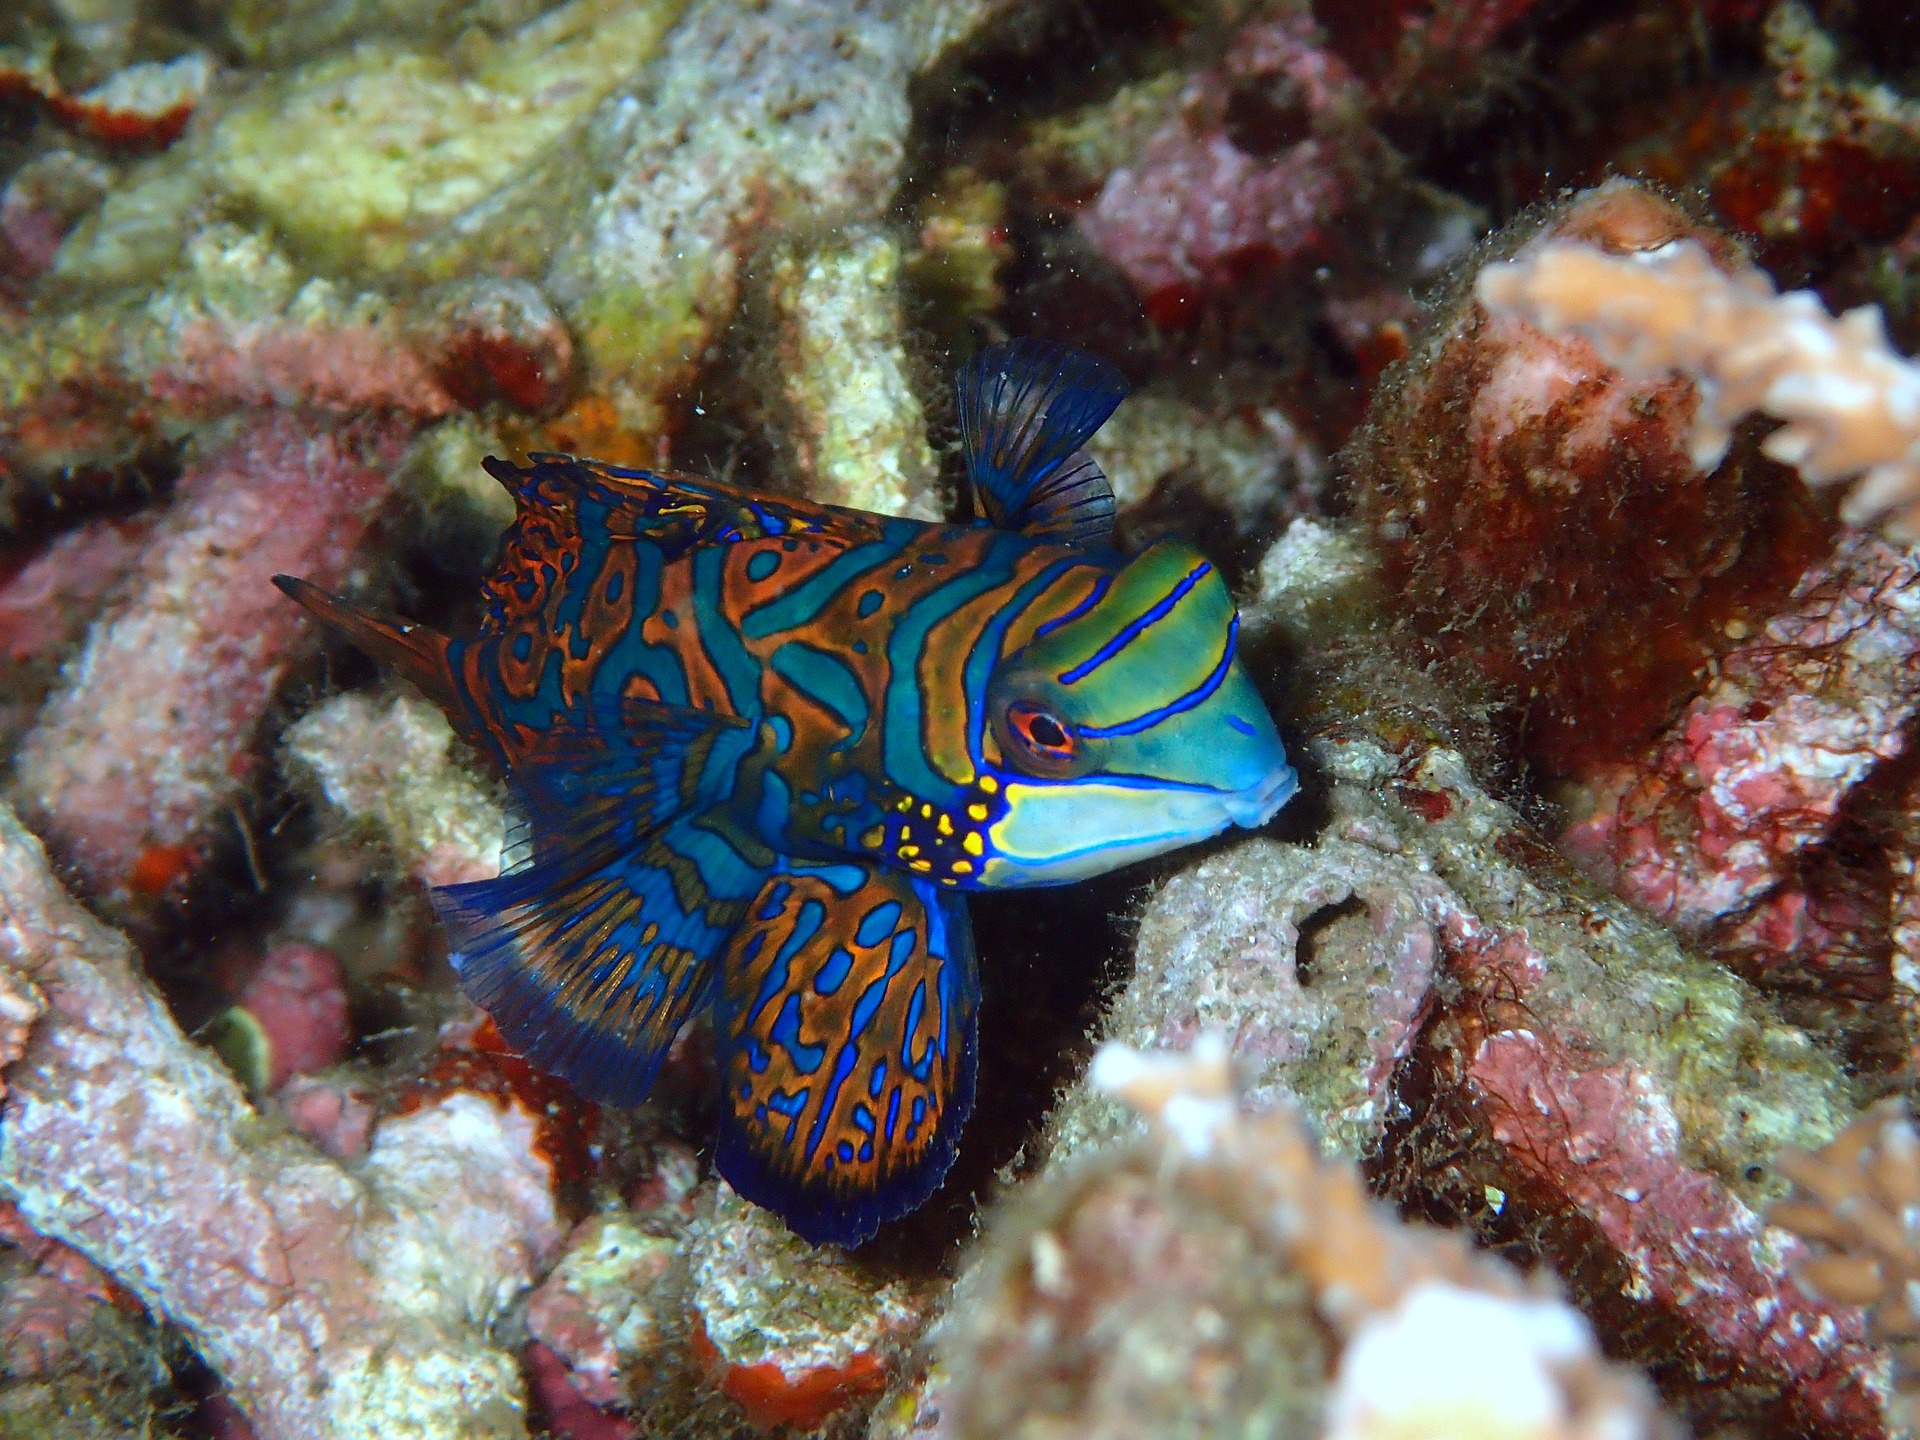 Phoe Travels to Sulawesi in Indonesia to snorkel with the Mandarin Fish